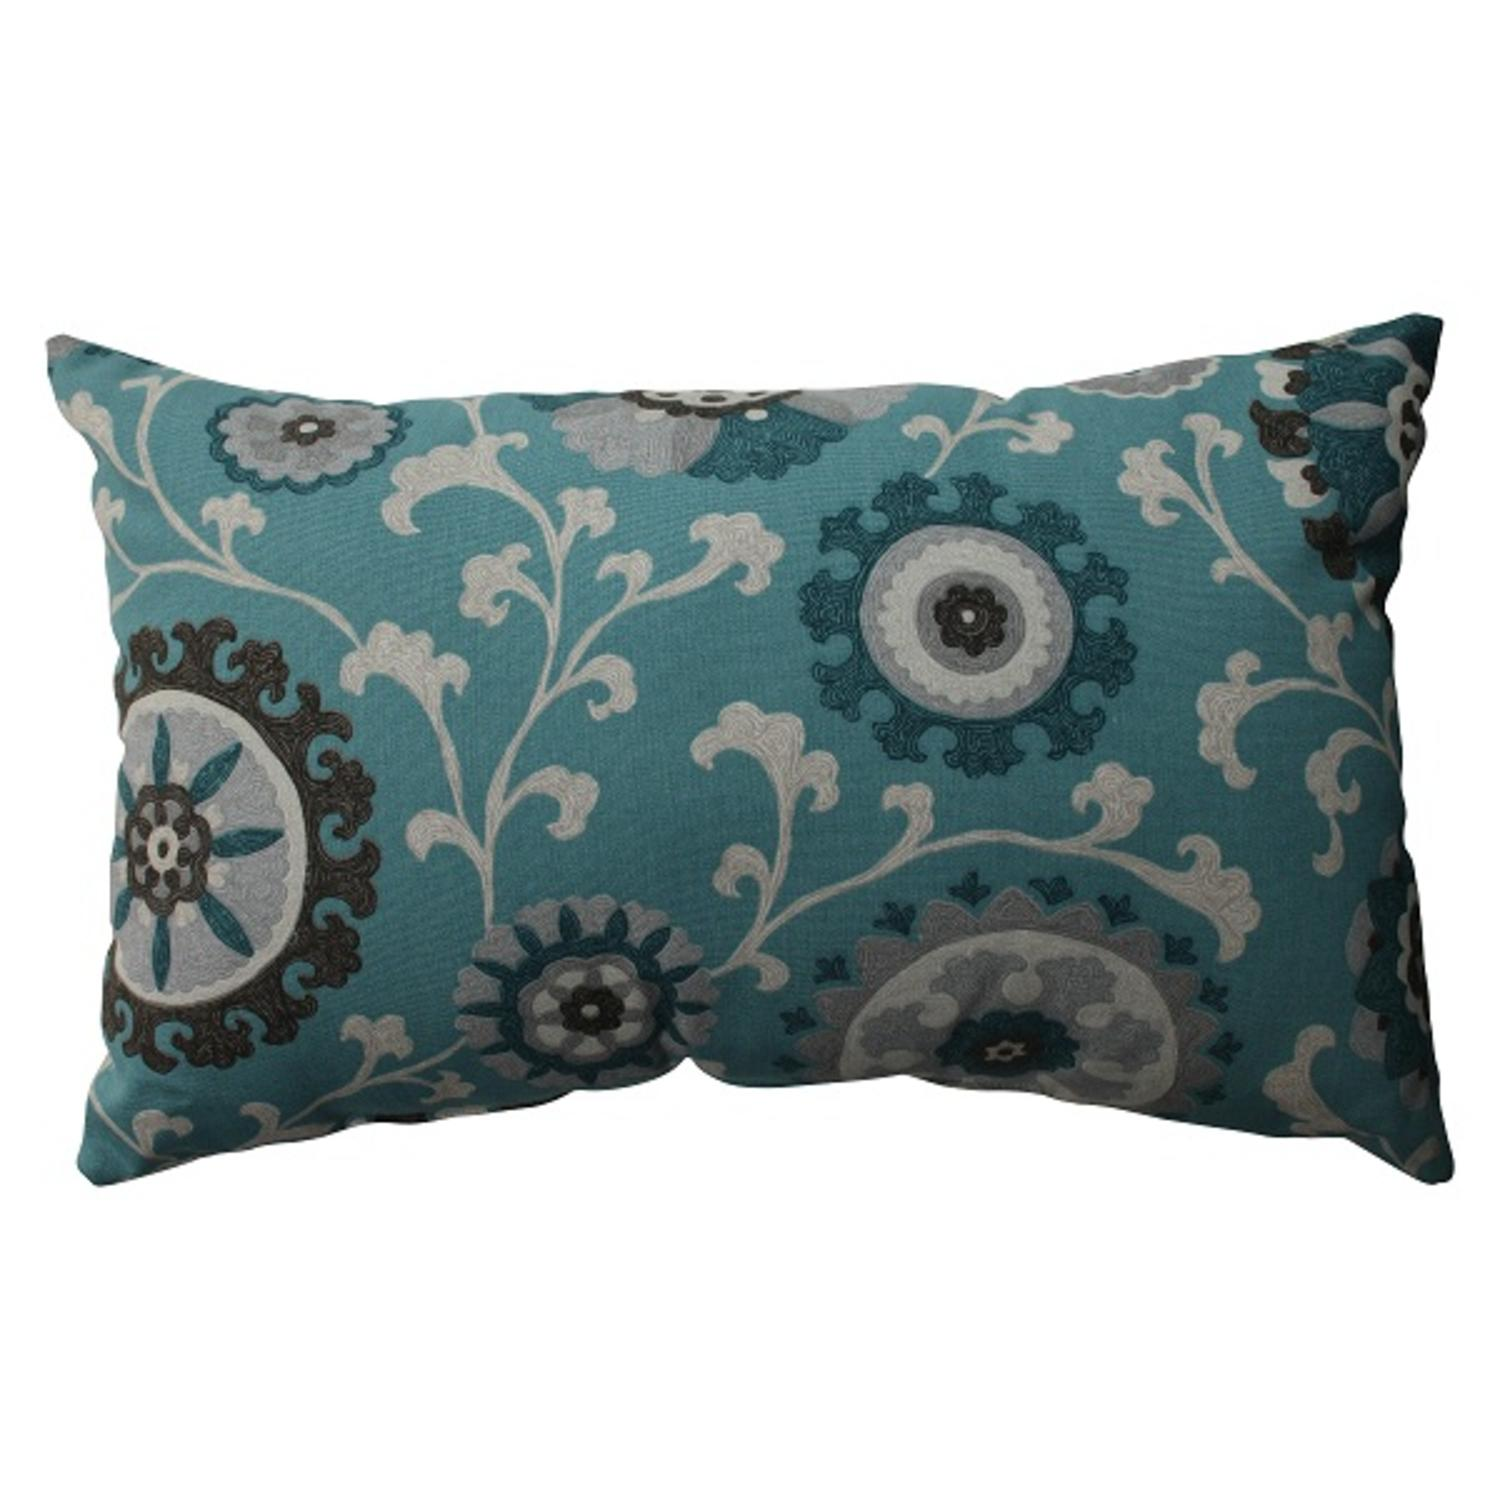 "18.5"" Teal Frenzy Rectangular Decorative Throw Pillow"